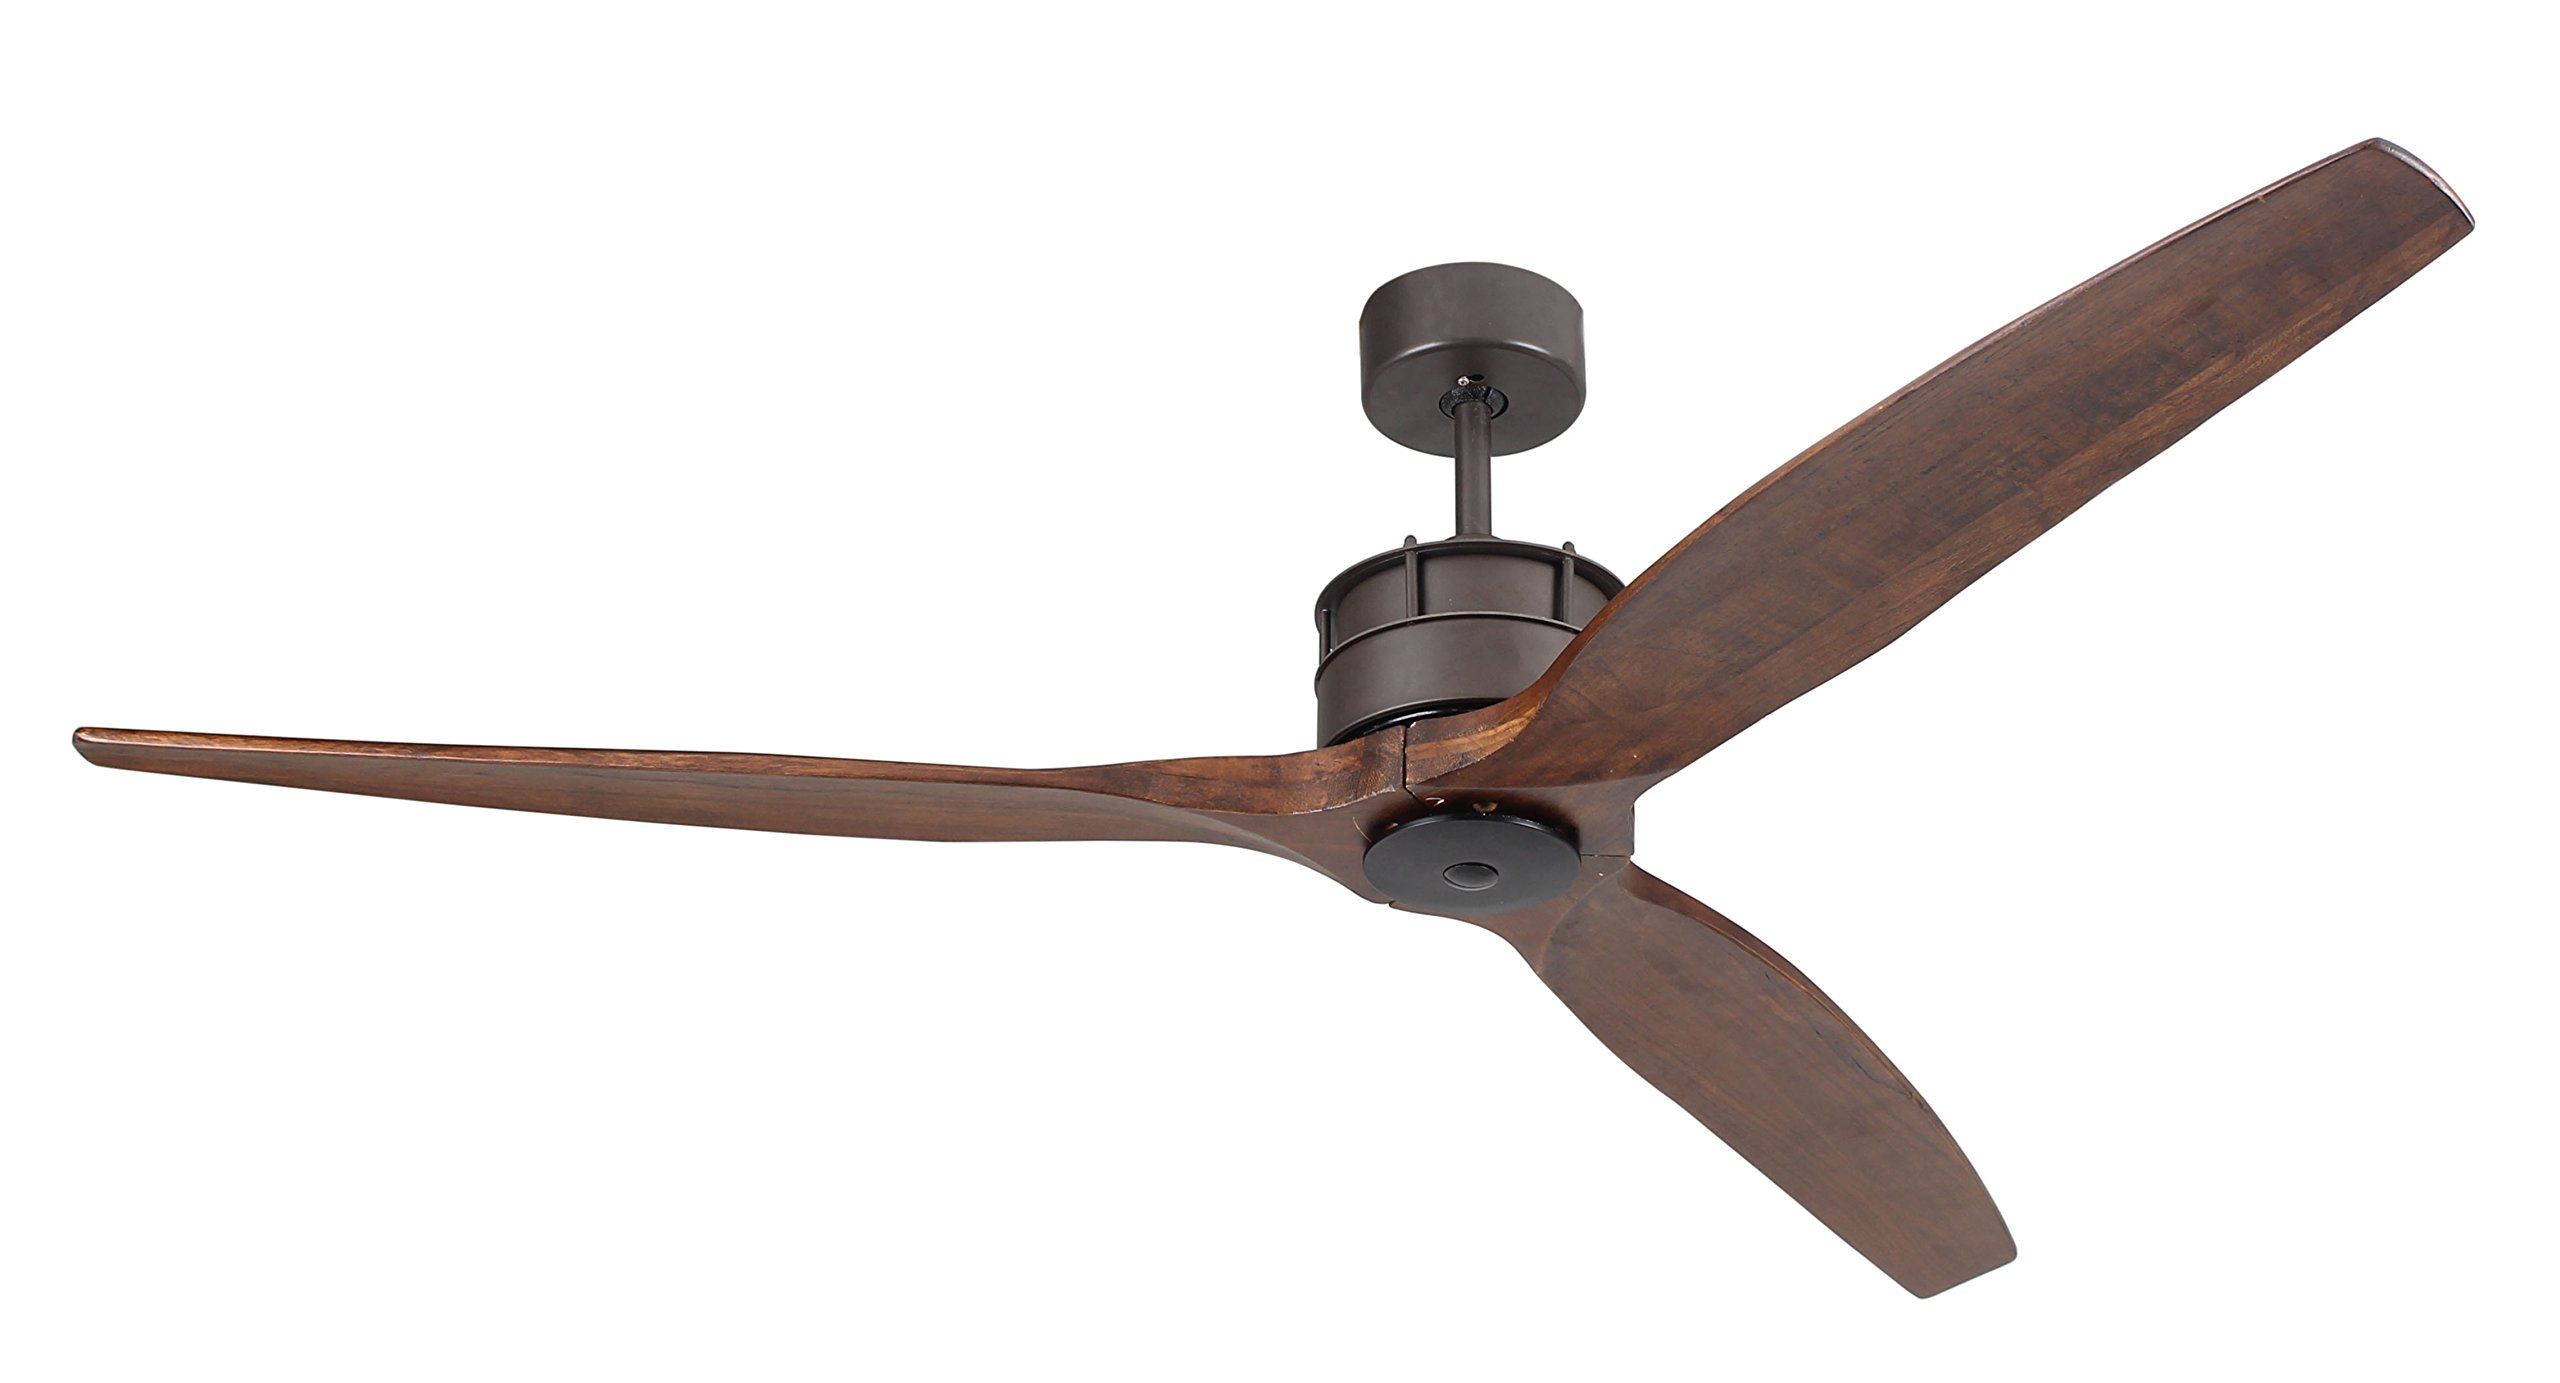 Airfusion Akmani 60-inch DC Fan with 6-Speed Remote Control, Oil Rubbed Bronze Body/Koa Blades by Beacon Lighting